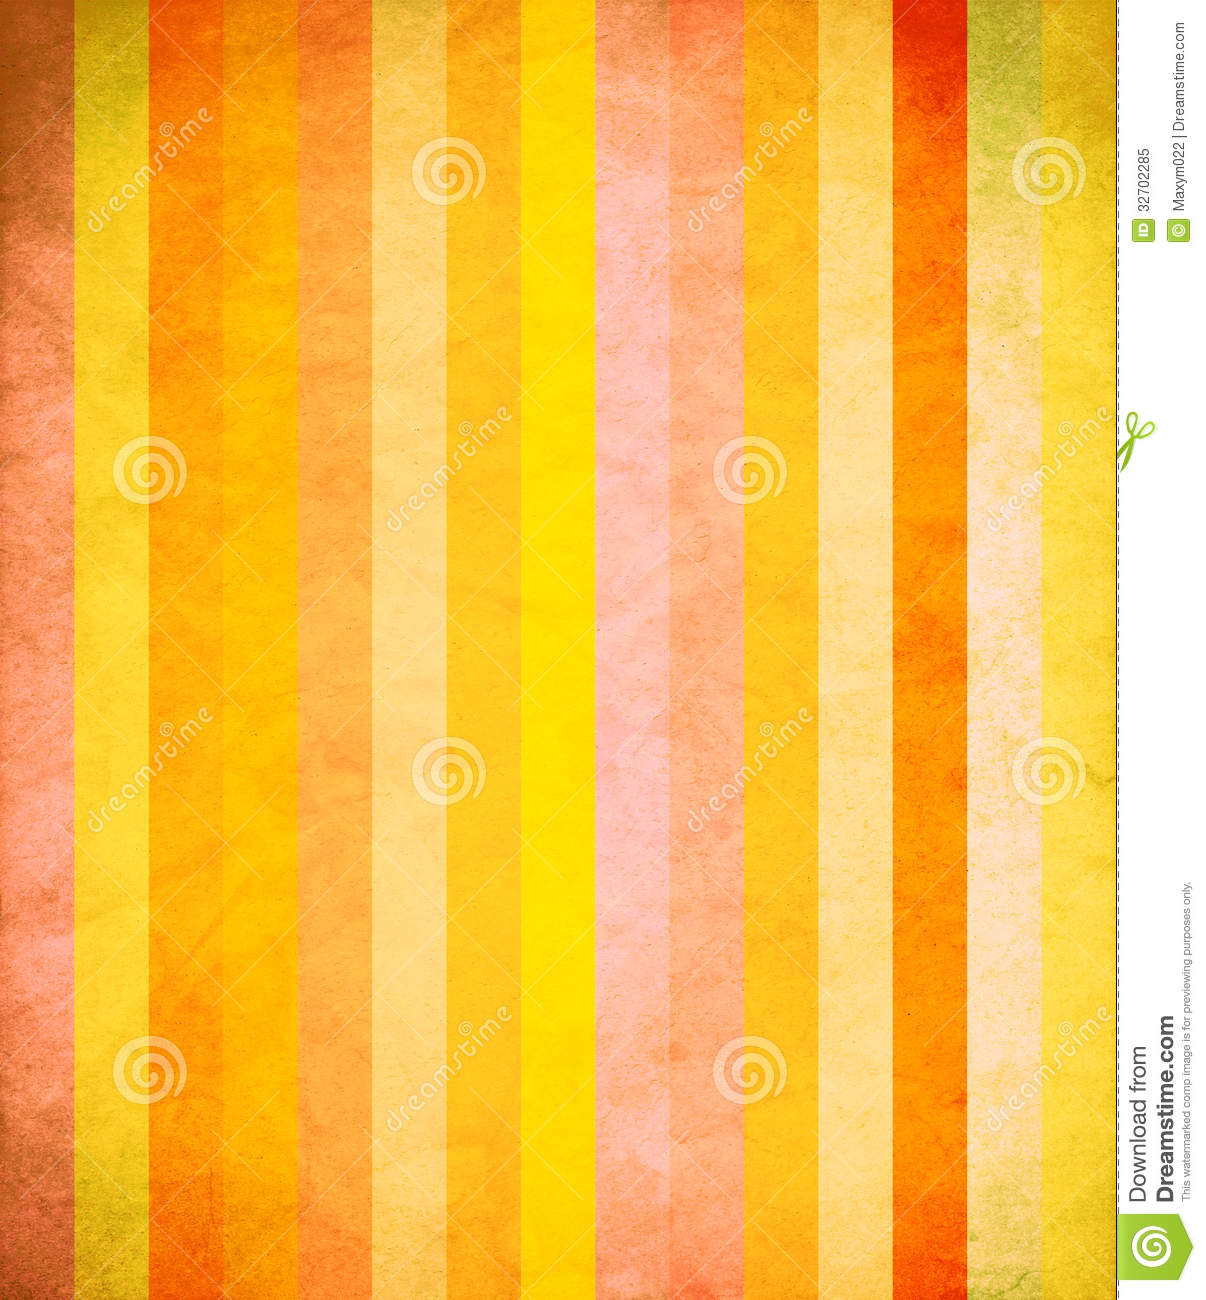 Retro Ad Template Background Stock Image - Image of backdrop, paper ...